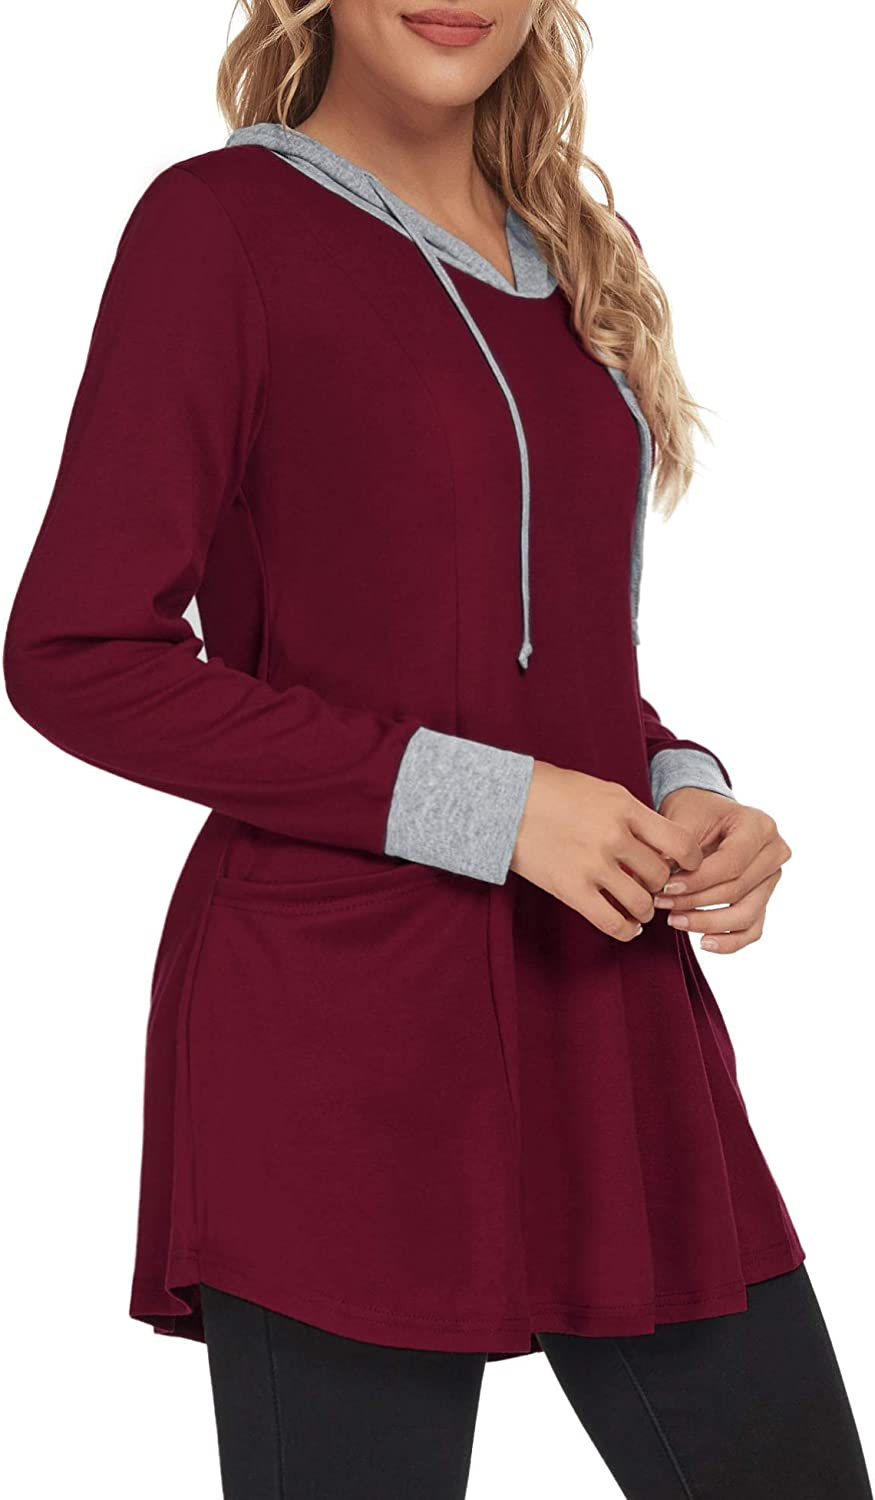 VALOLIA Women's Color Block Lightweight Spring Pullover Plaid Splicing Sweatshirt with Pockets